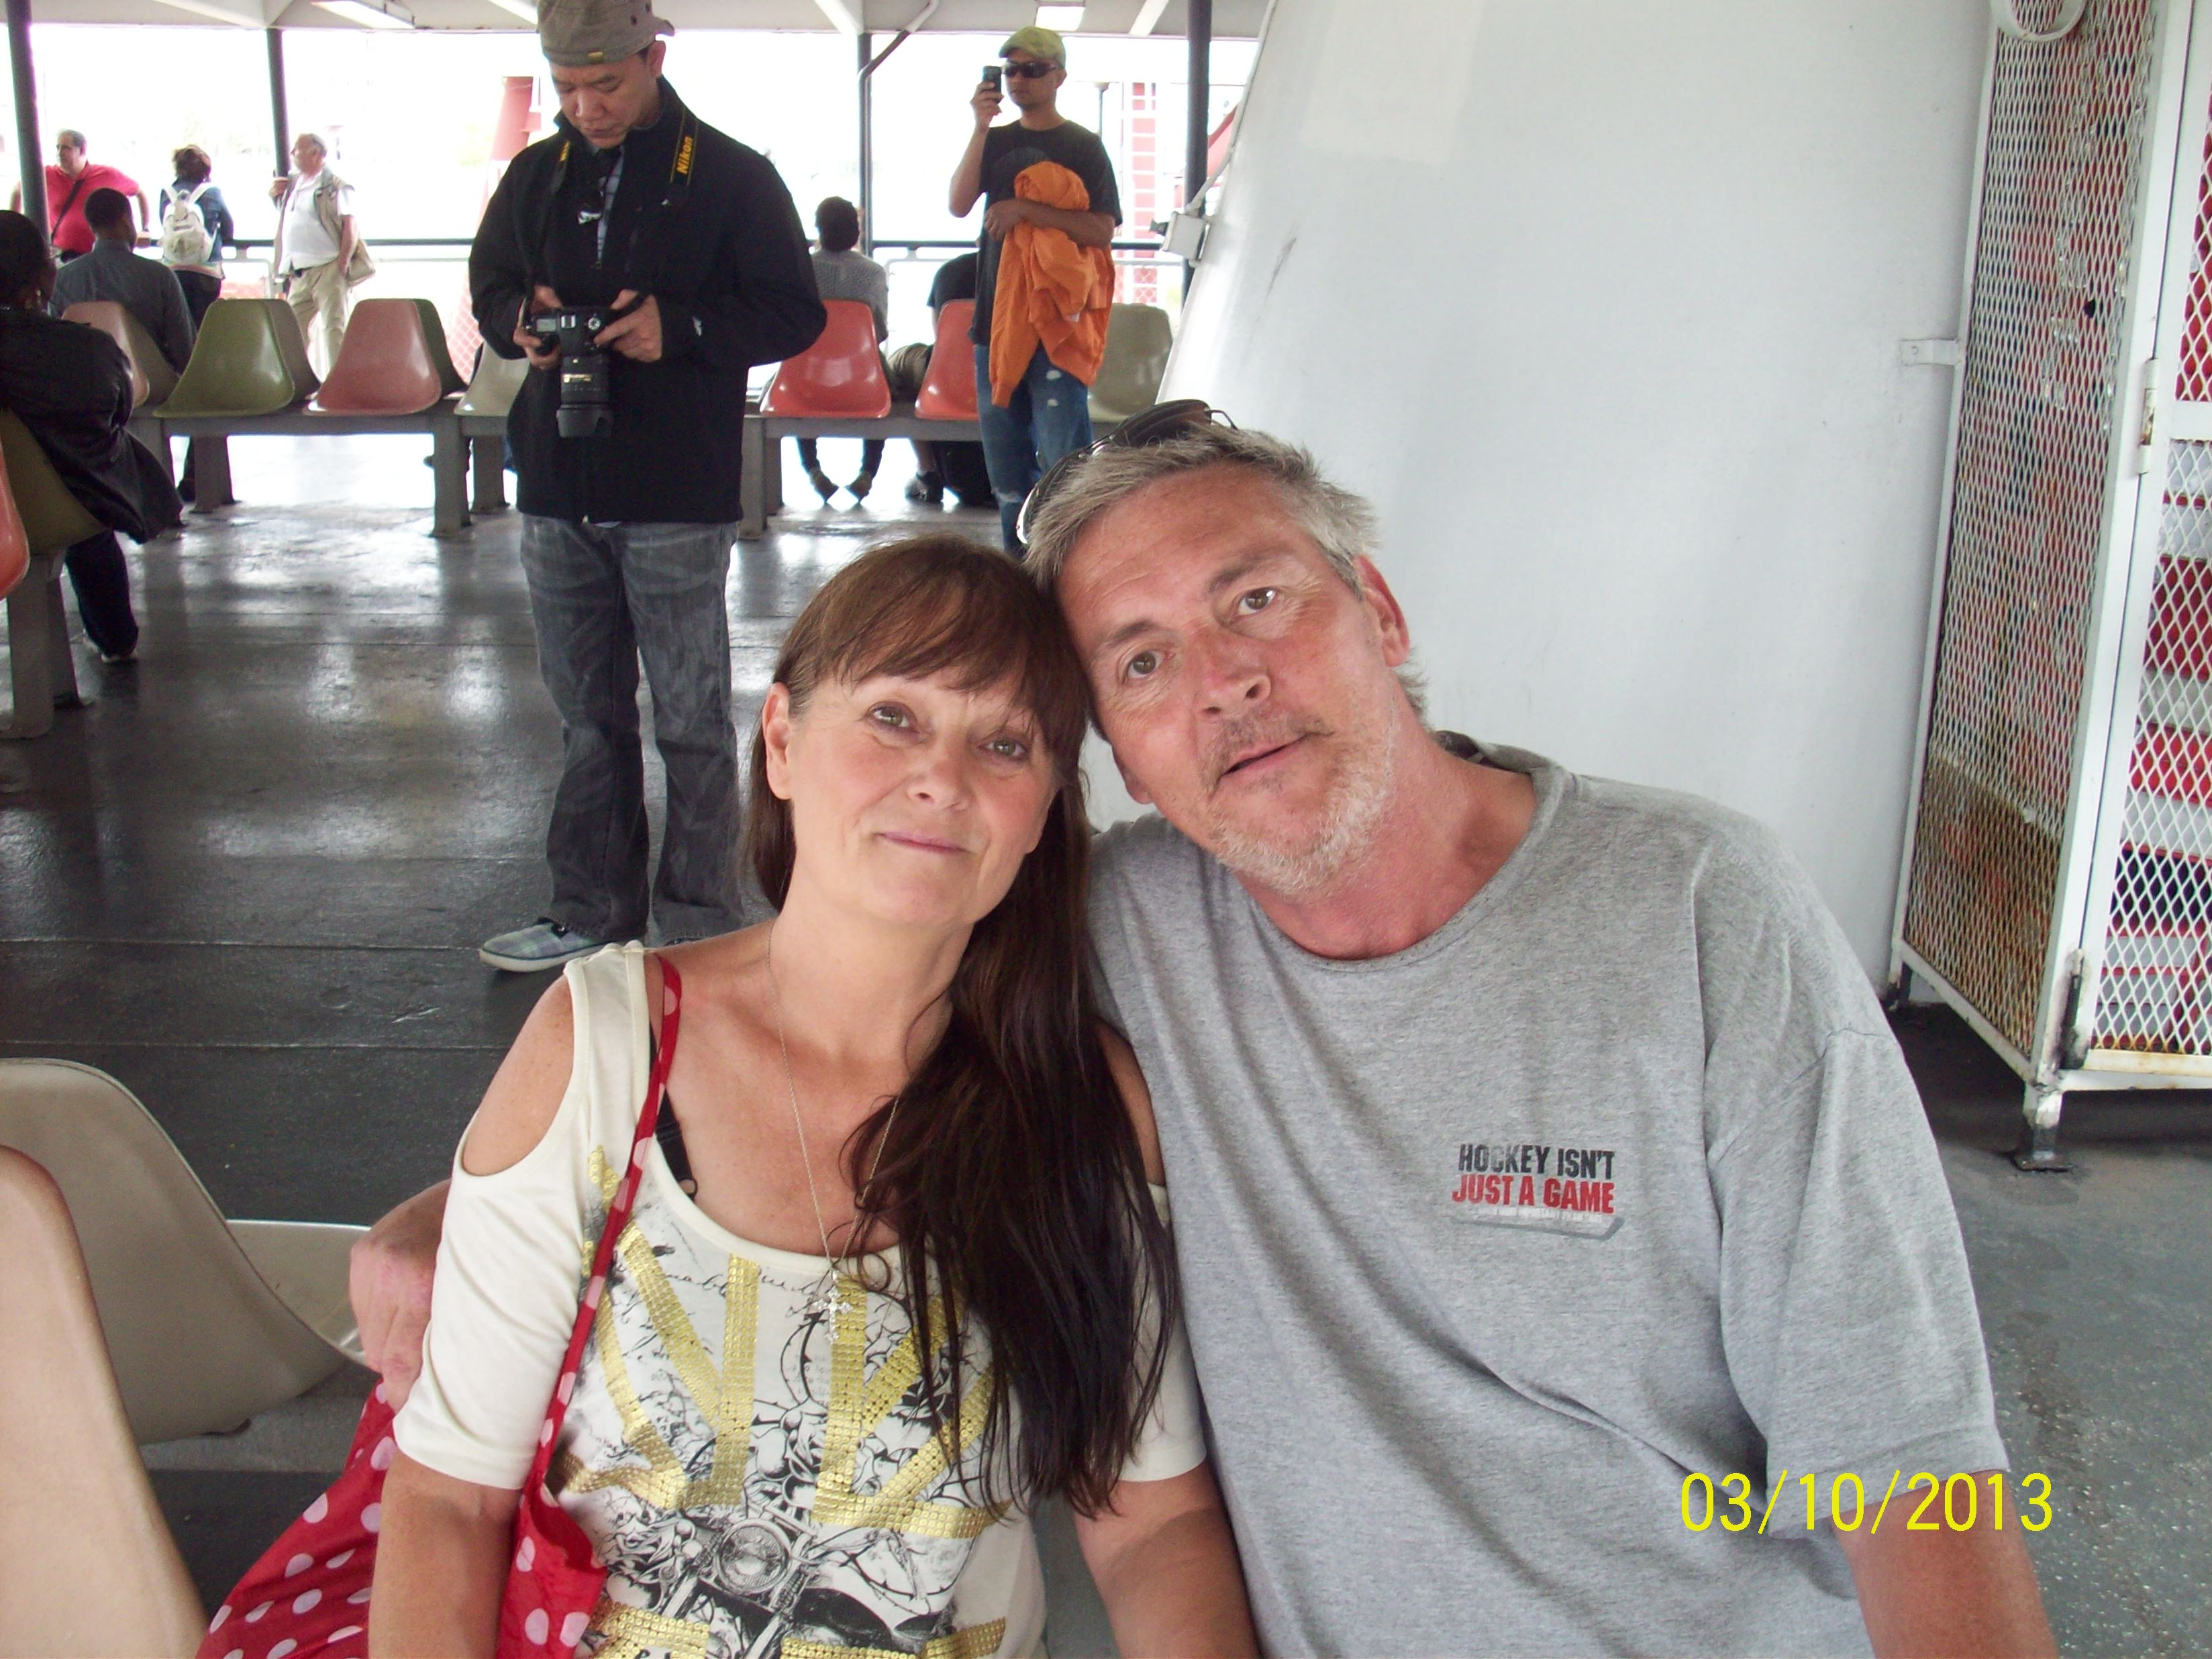 Jeff and I in New Orleans -I just Love this picture of Us. I miss you My Love. You are Forever In My Heart. Always- your loving wife (Donna)